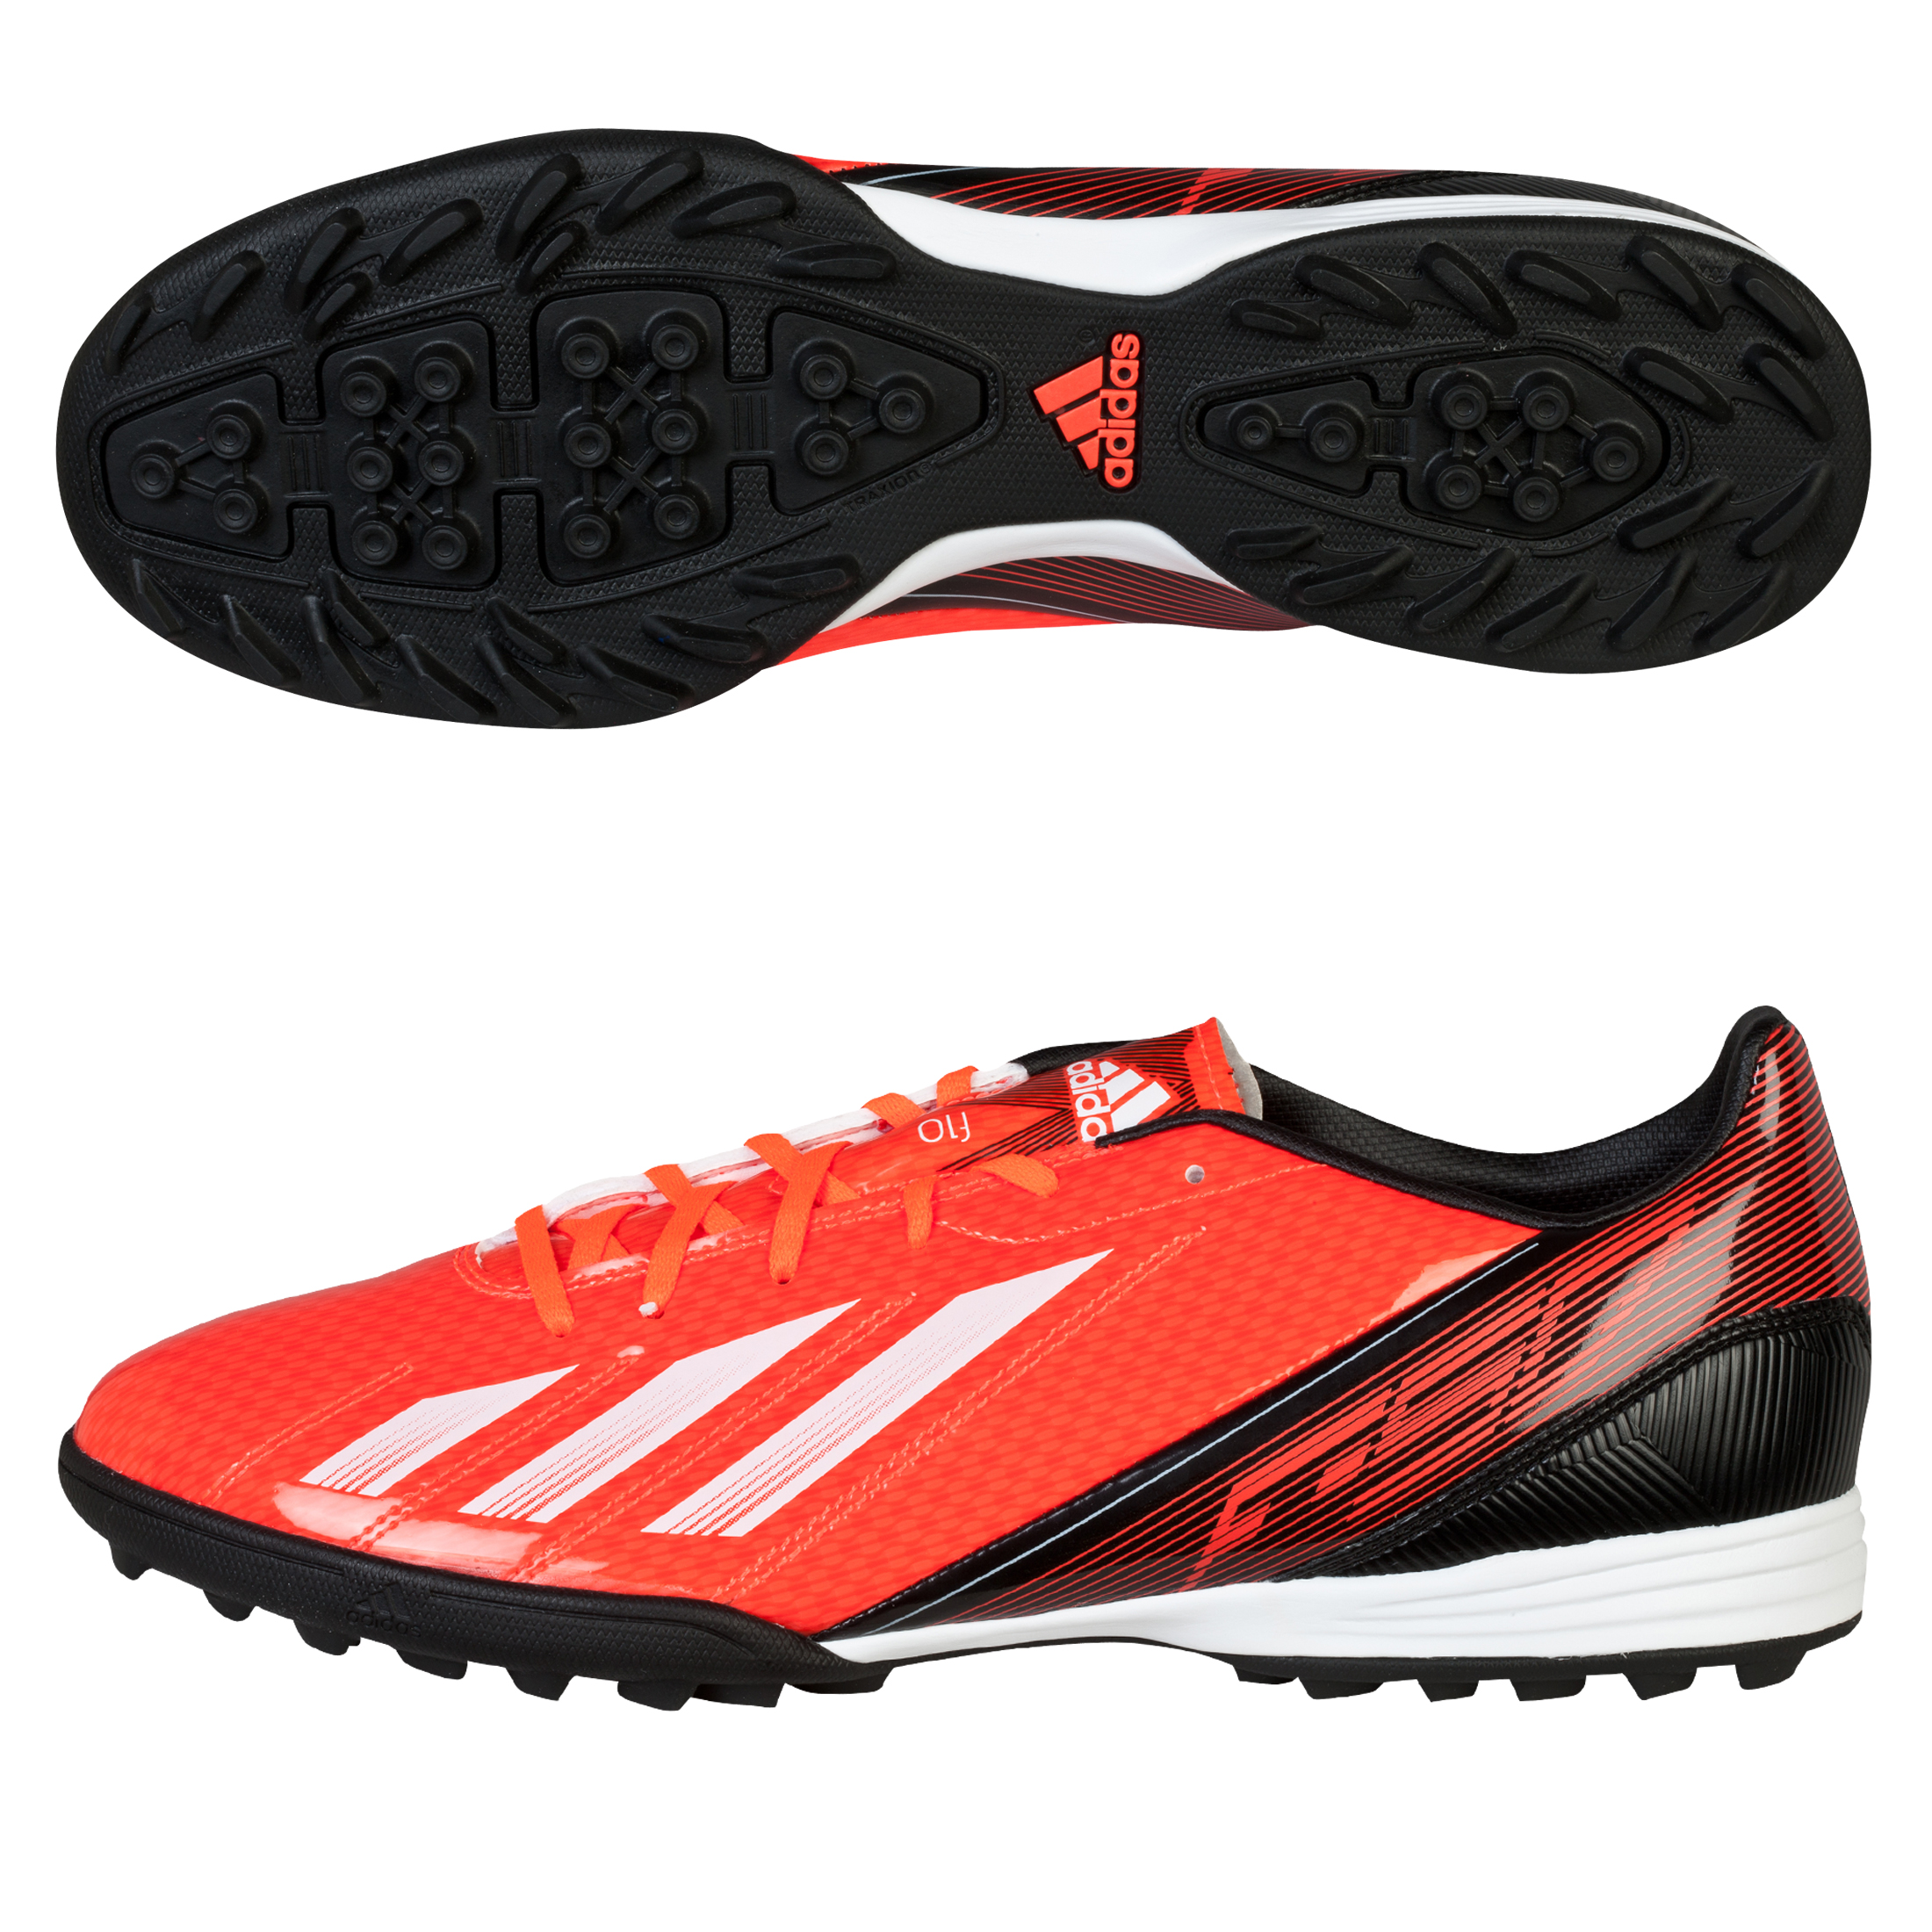 Adidas F10 TRX Astroturf Trainers Red